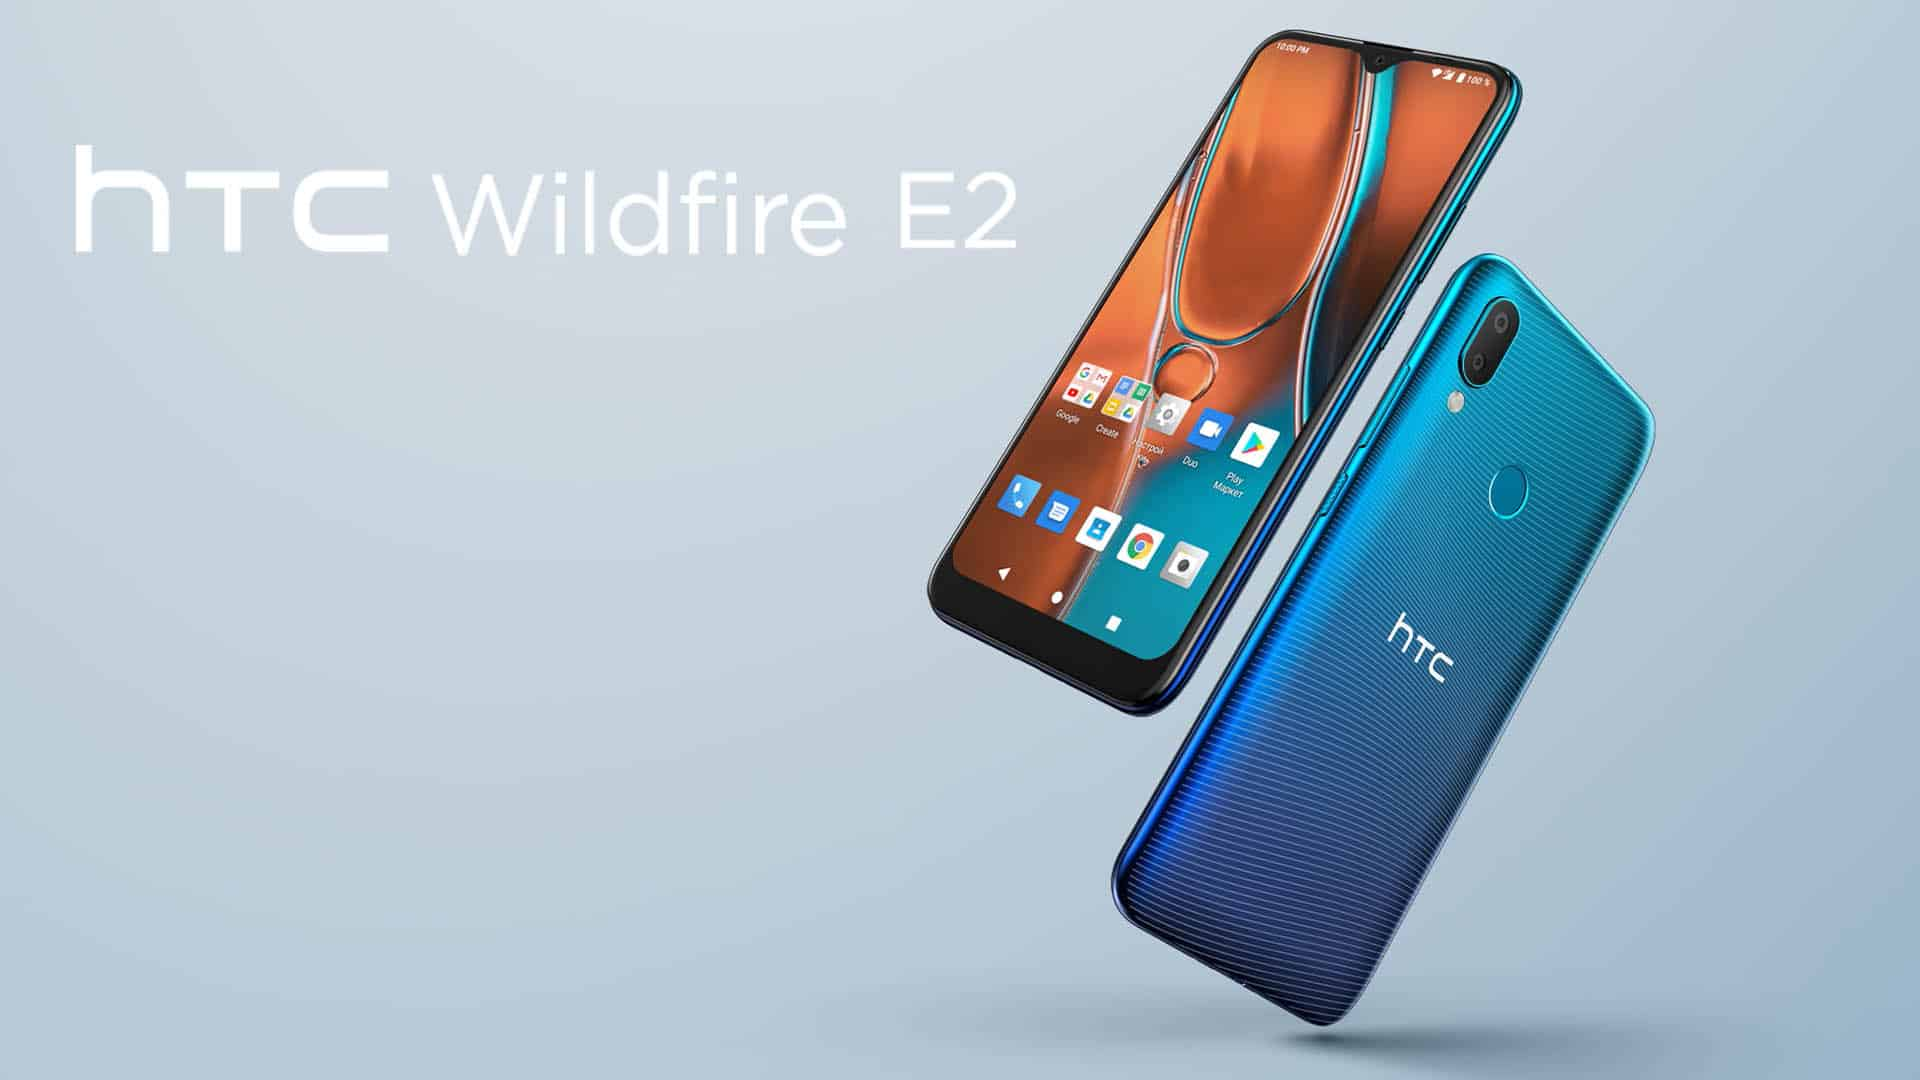 How to Root HTC Wildfire E2 with Magisk without TWRP